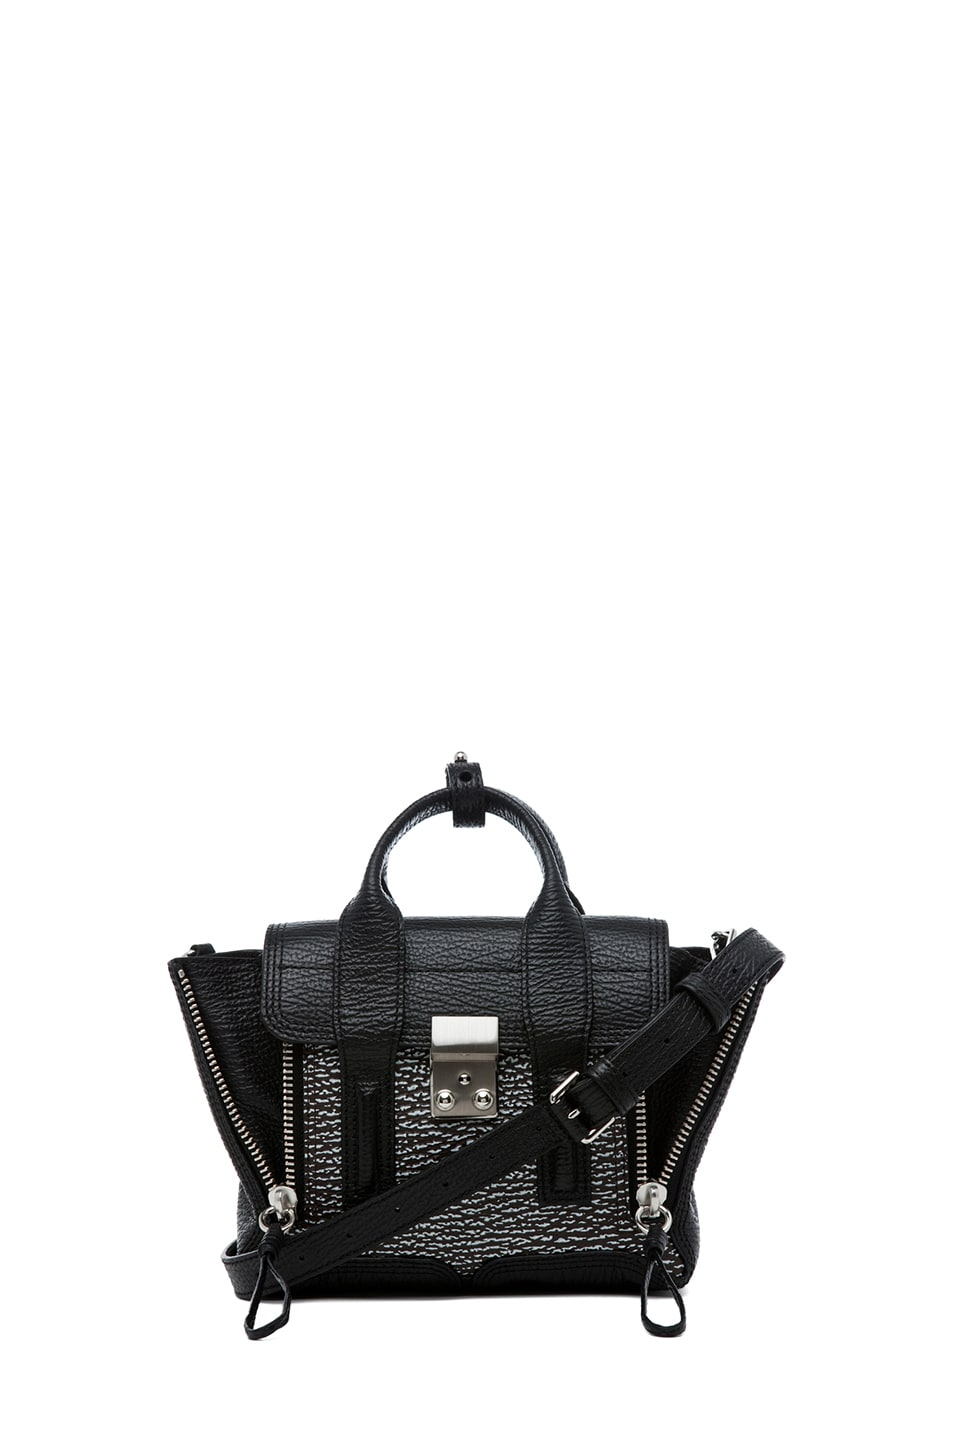 Image 1 of 3.1 phillip lim Mini Pashli Shark Embossed Satchel in White & Black